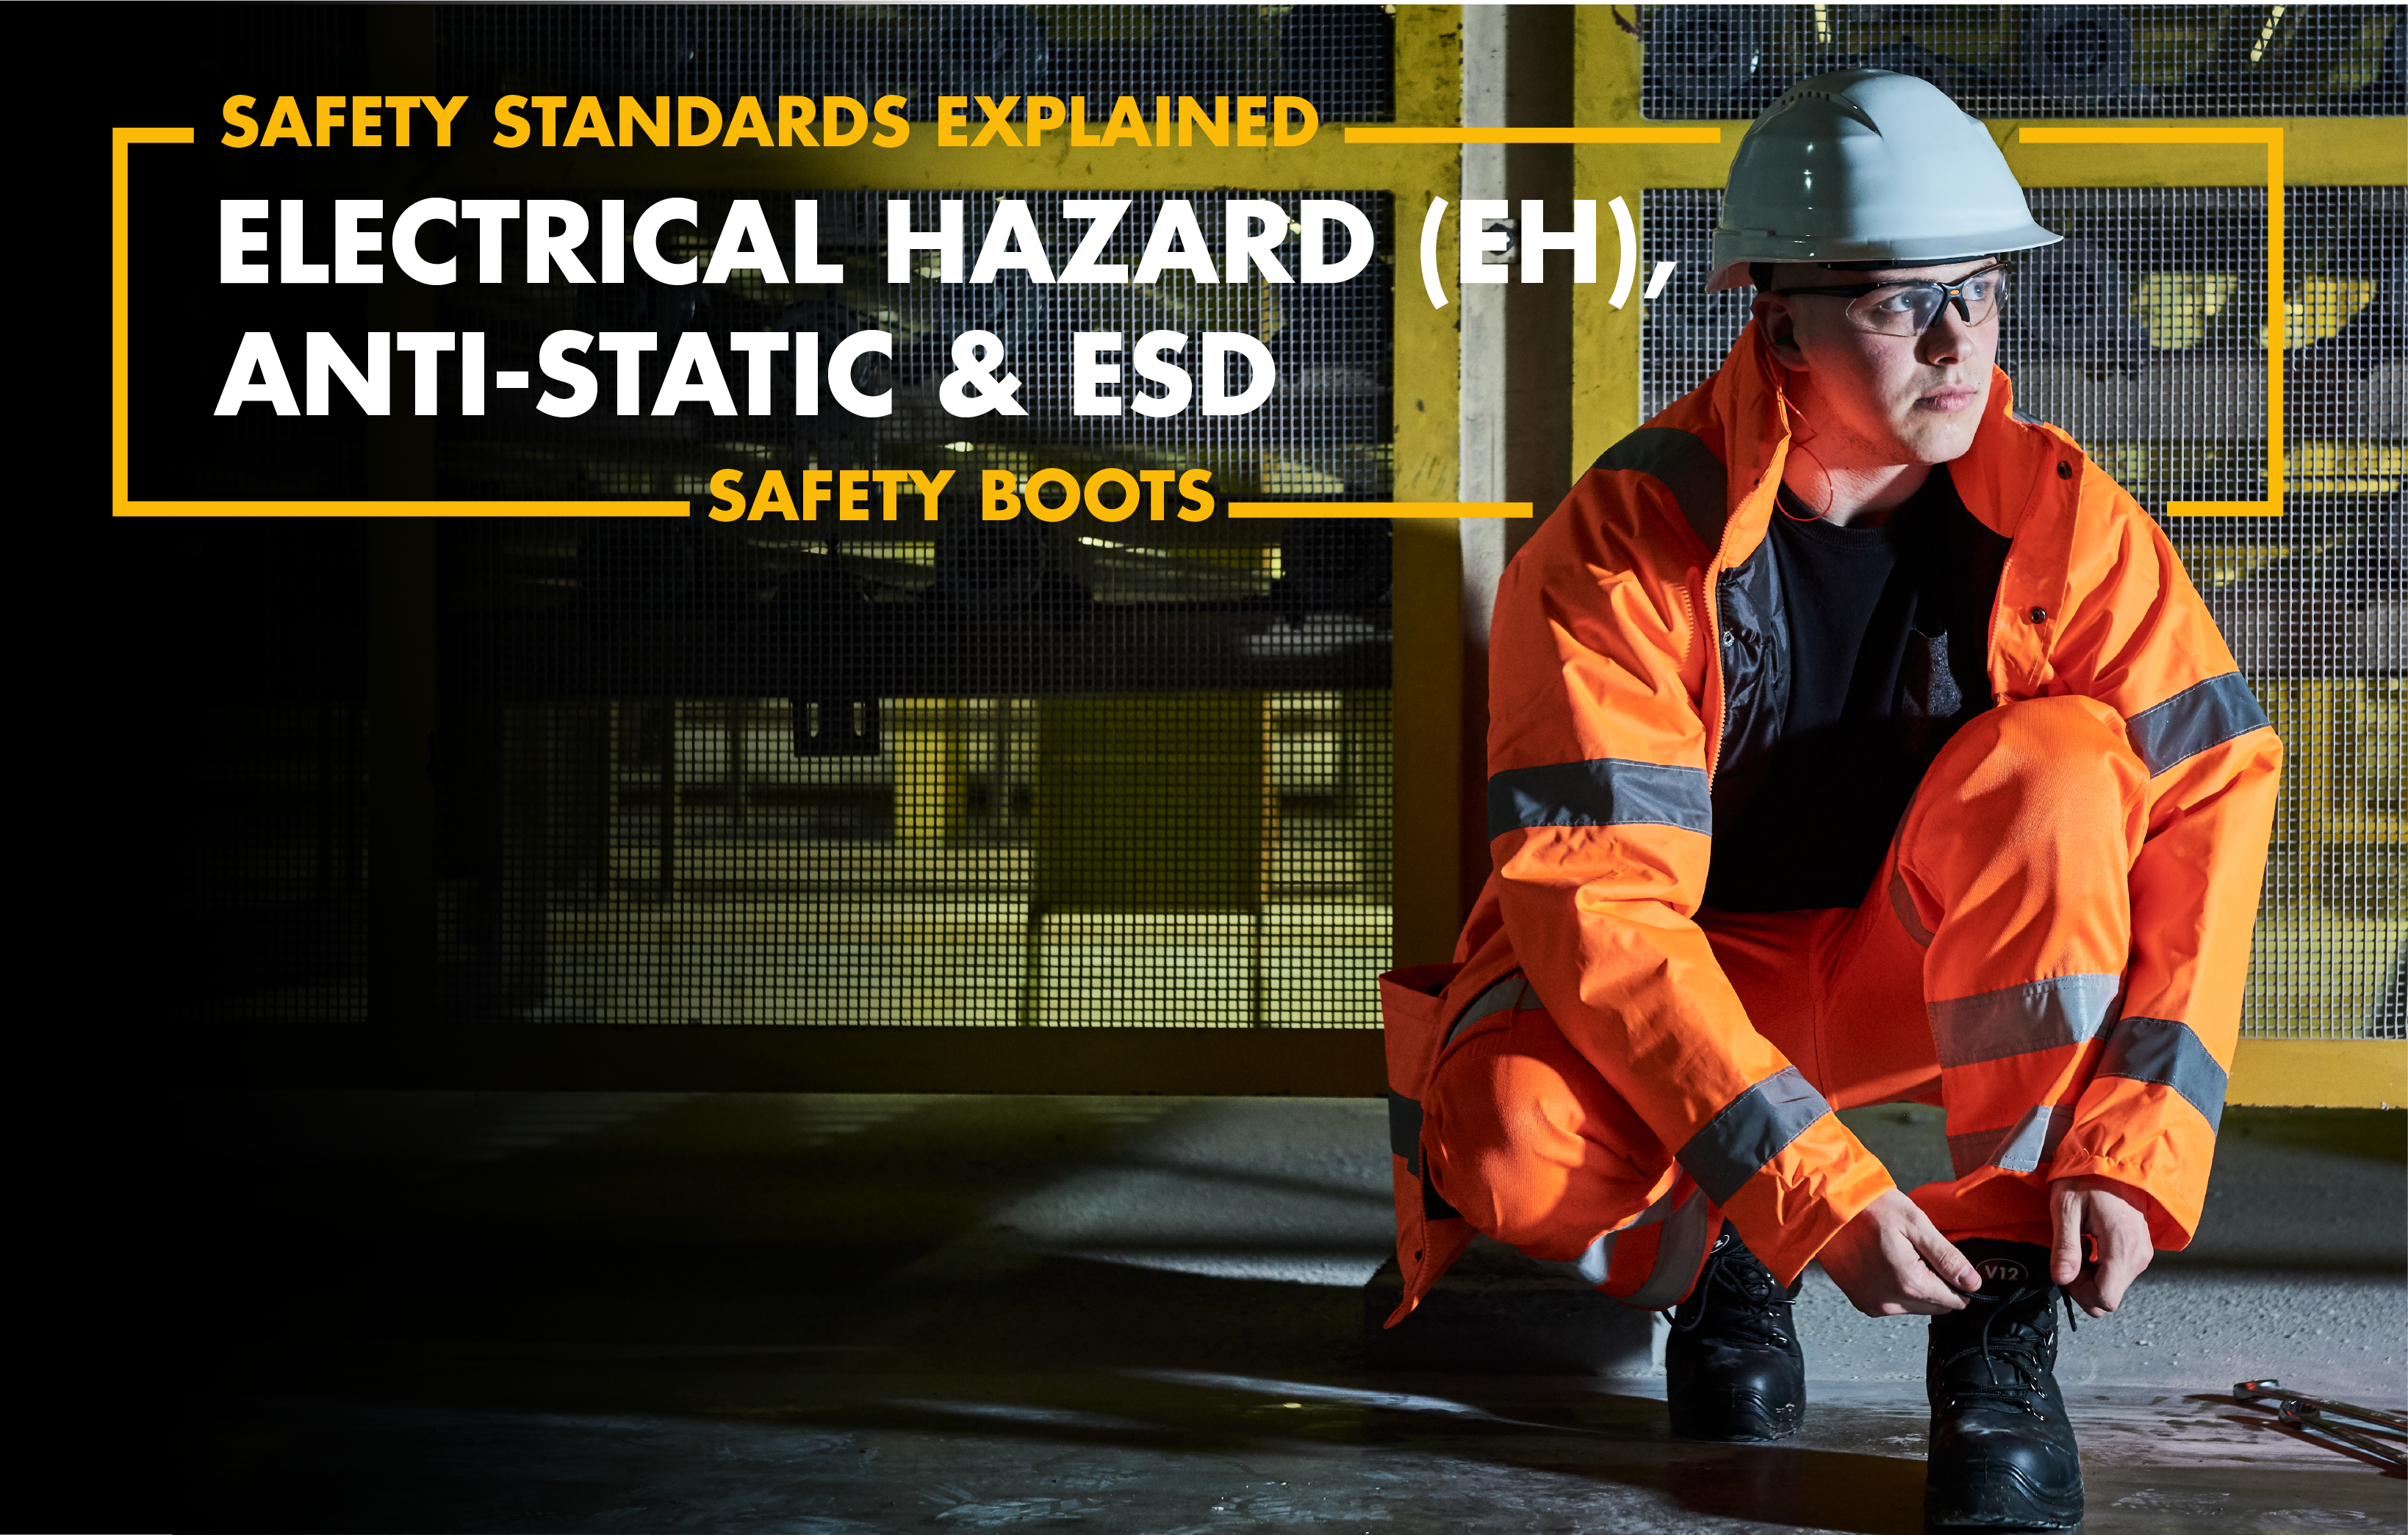 Electrical Standards Explained | Electrical Hazard (EH), Anti-Static & Electrostatic Dissapative (ESD) Safety Boots